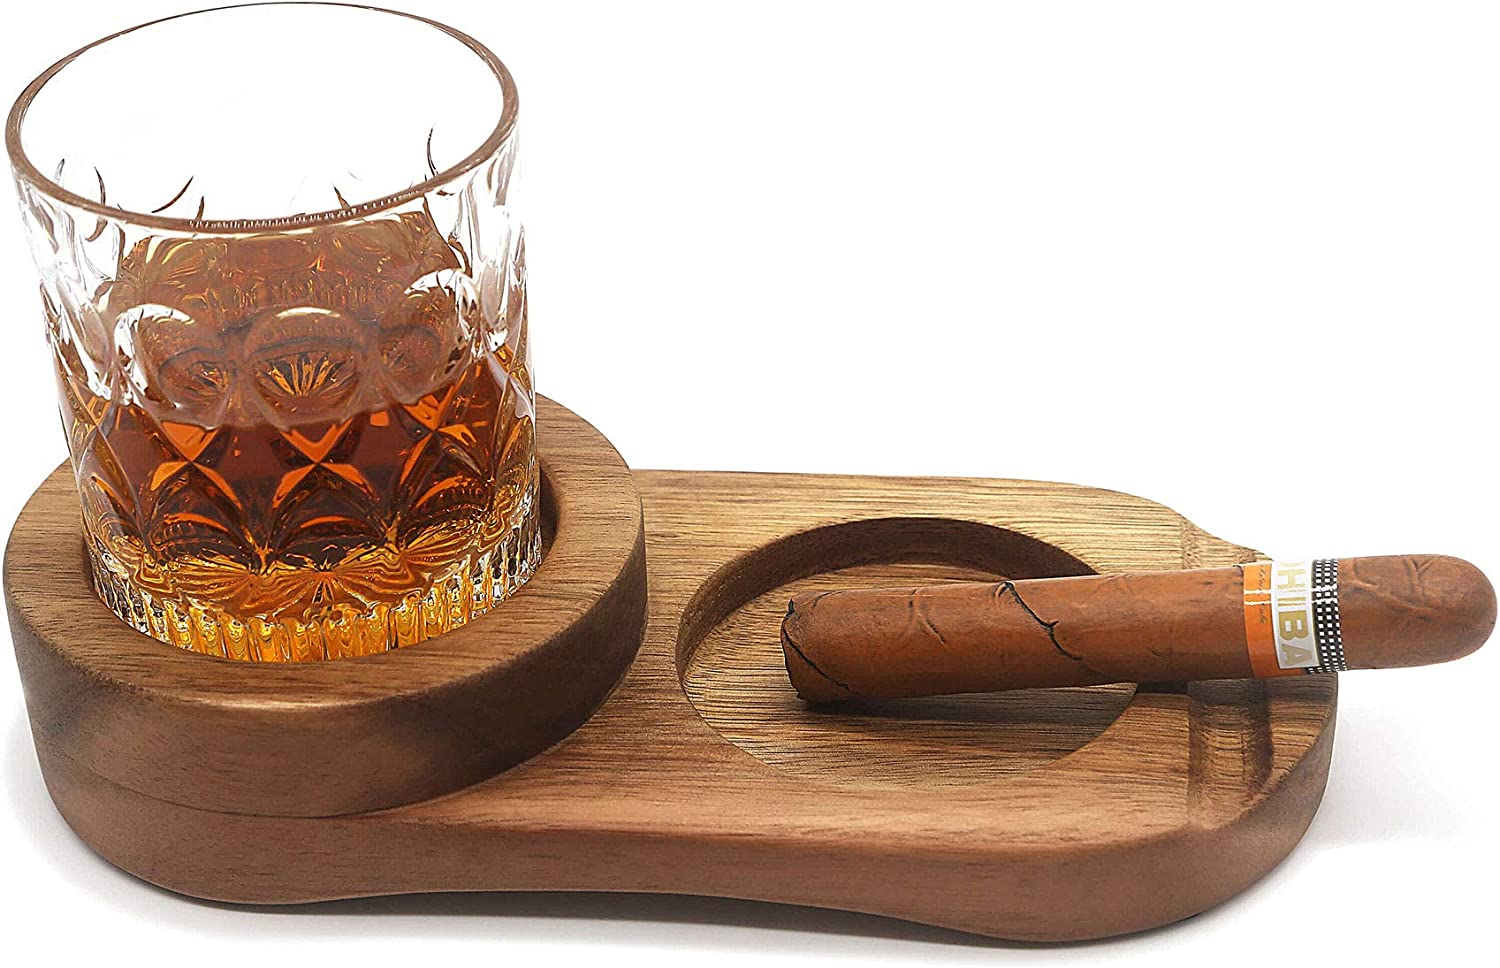 Rustic Wooden Cigar Ashtray, Whiskey Glass Tray With Cigar Holder, Slot to Hold Cigar, Whiskey Accessory Set, A Great Decor for Home, Office or Bar, Great Gift for Men